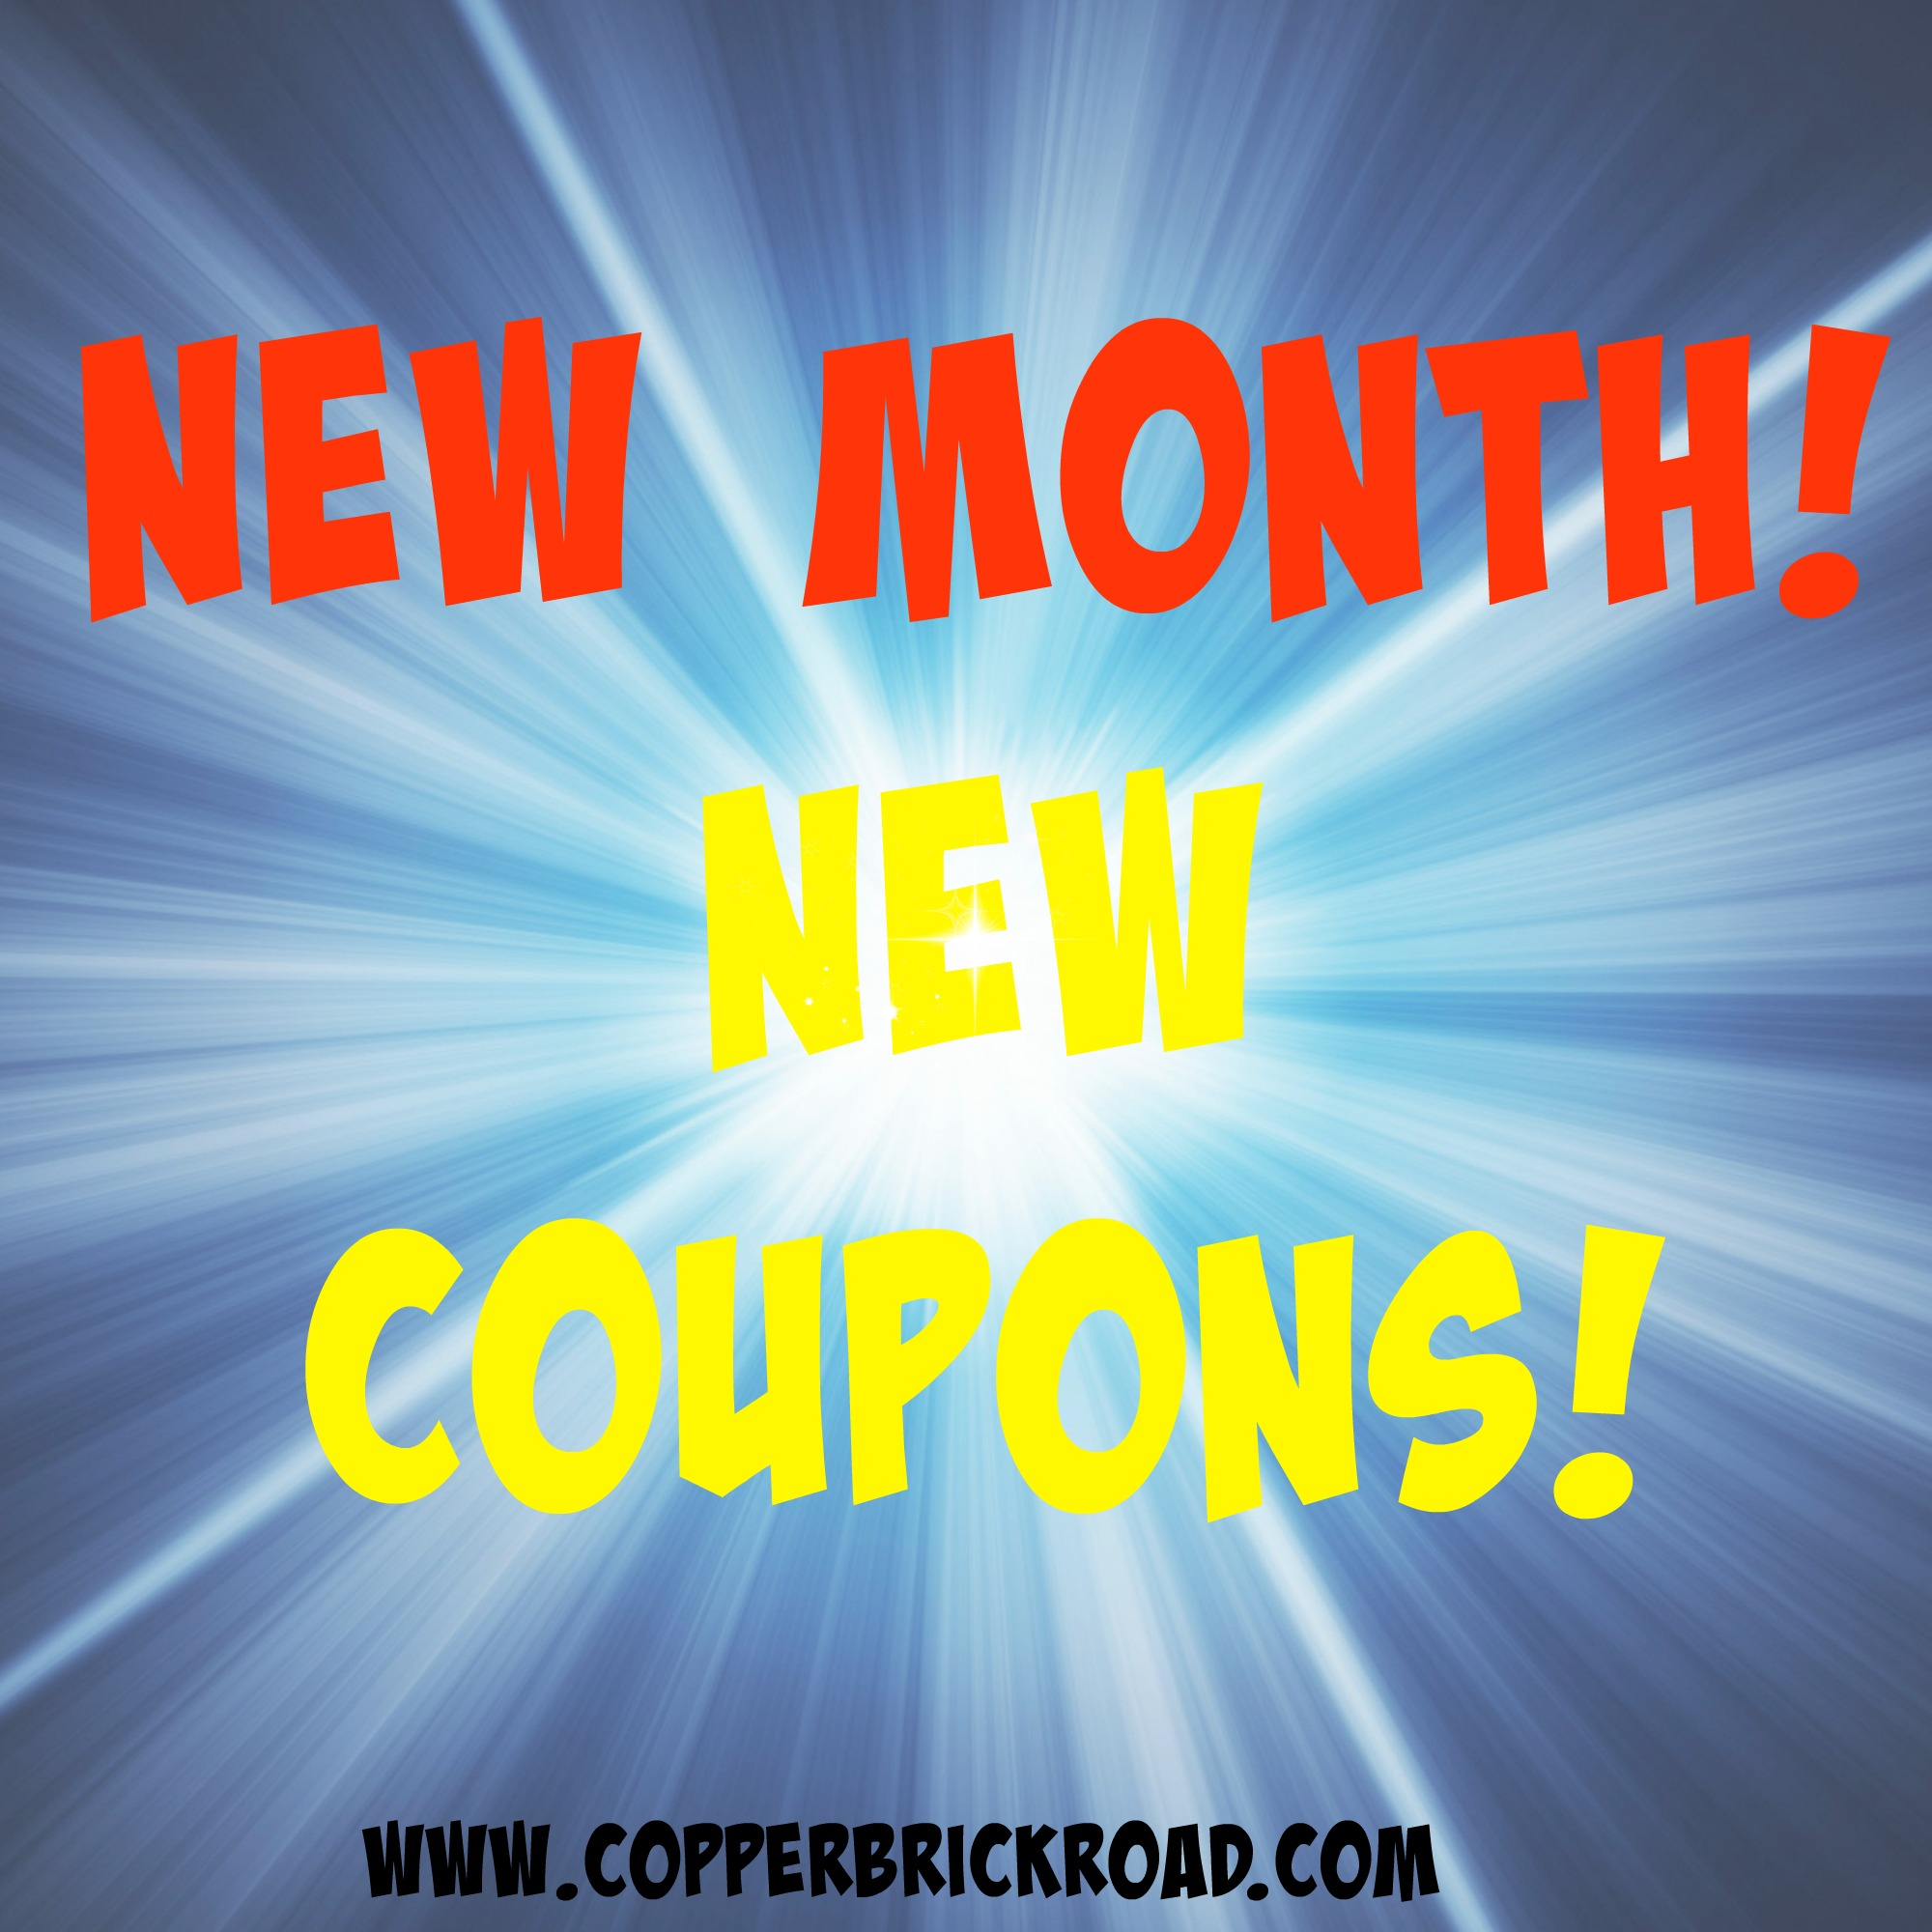 new month new printable coupons